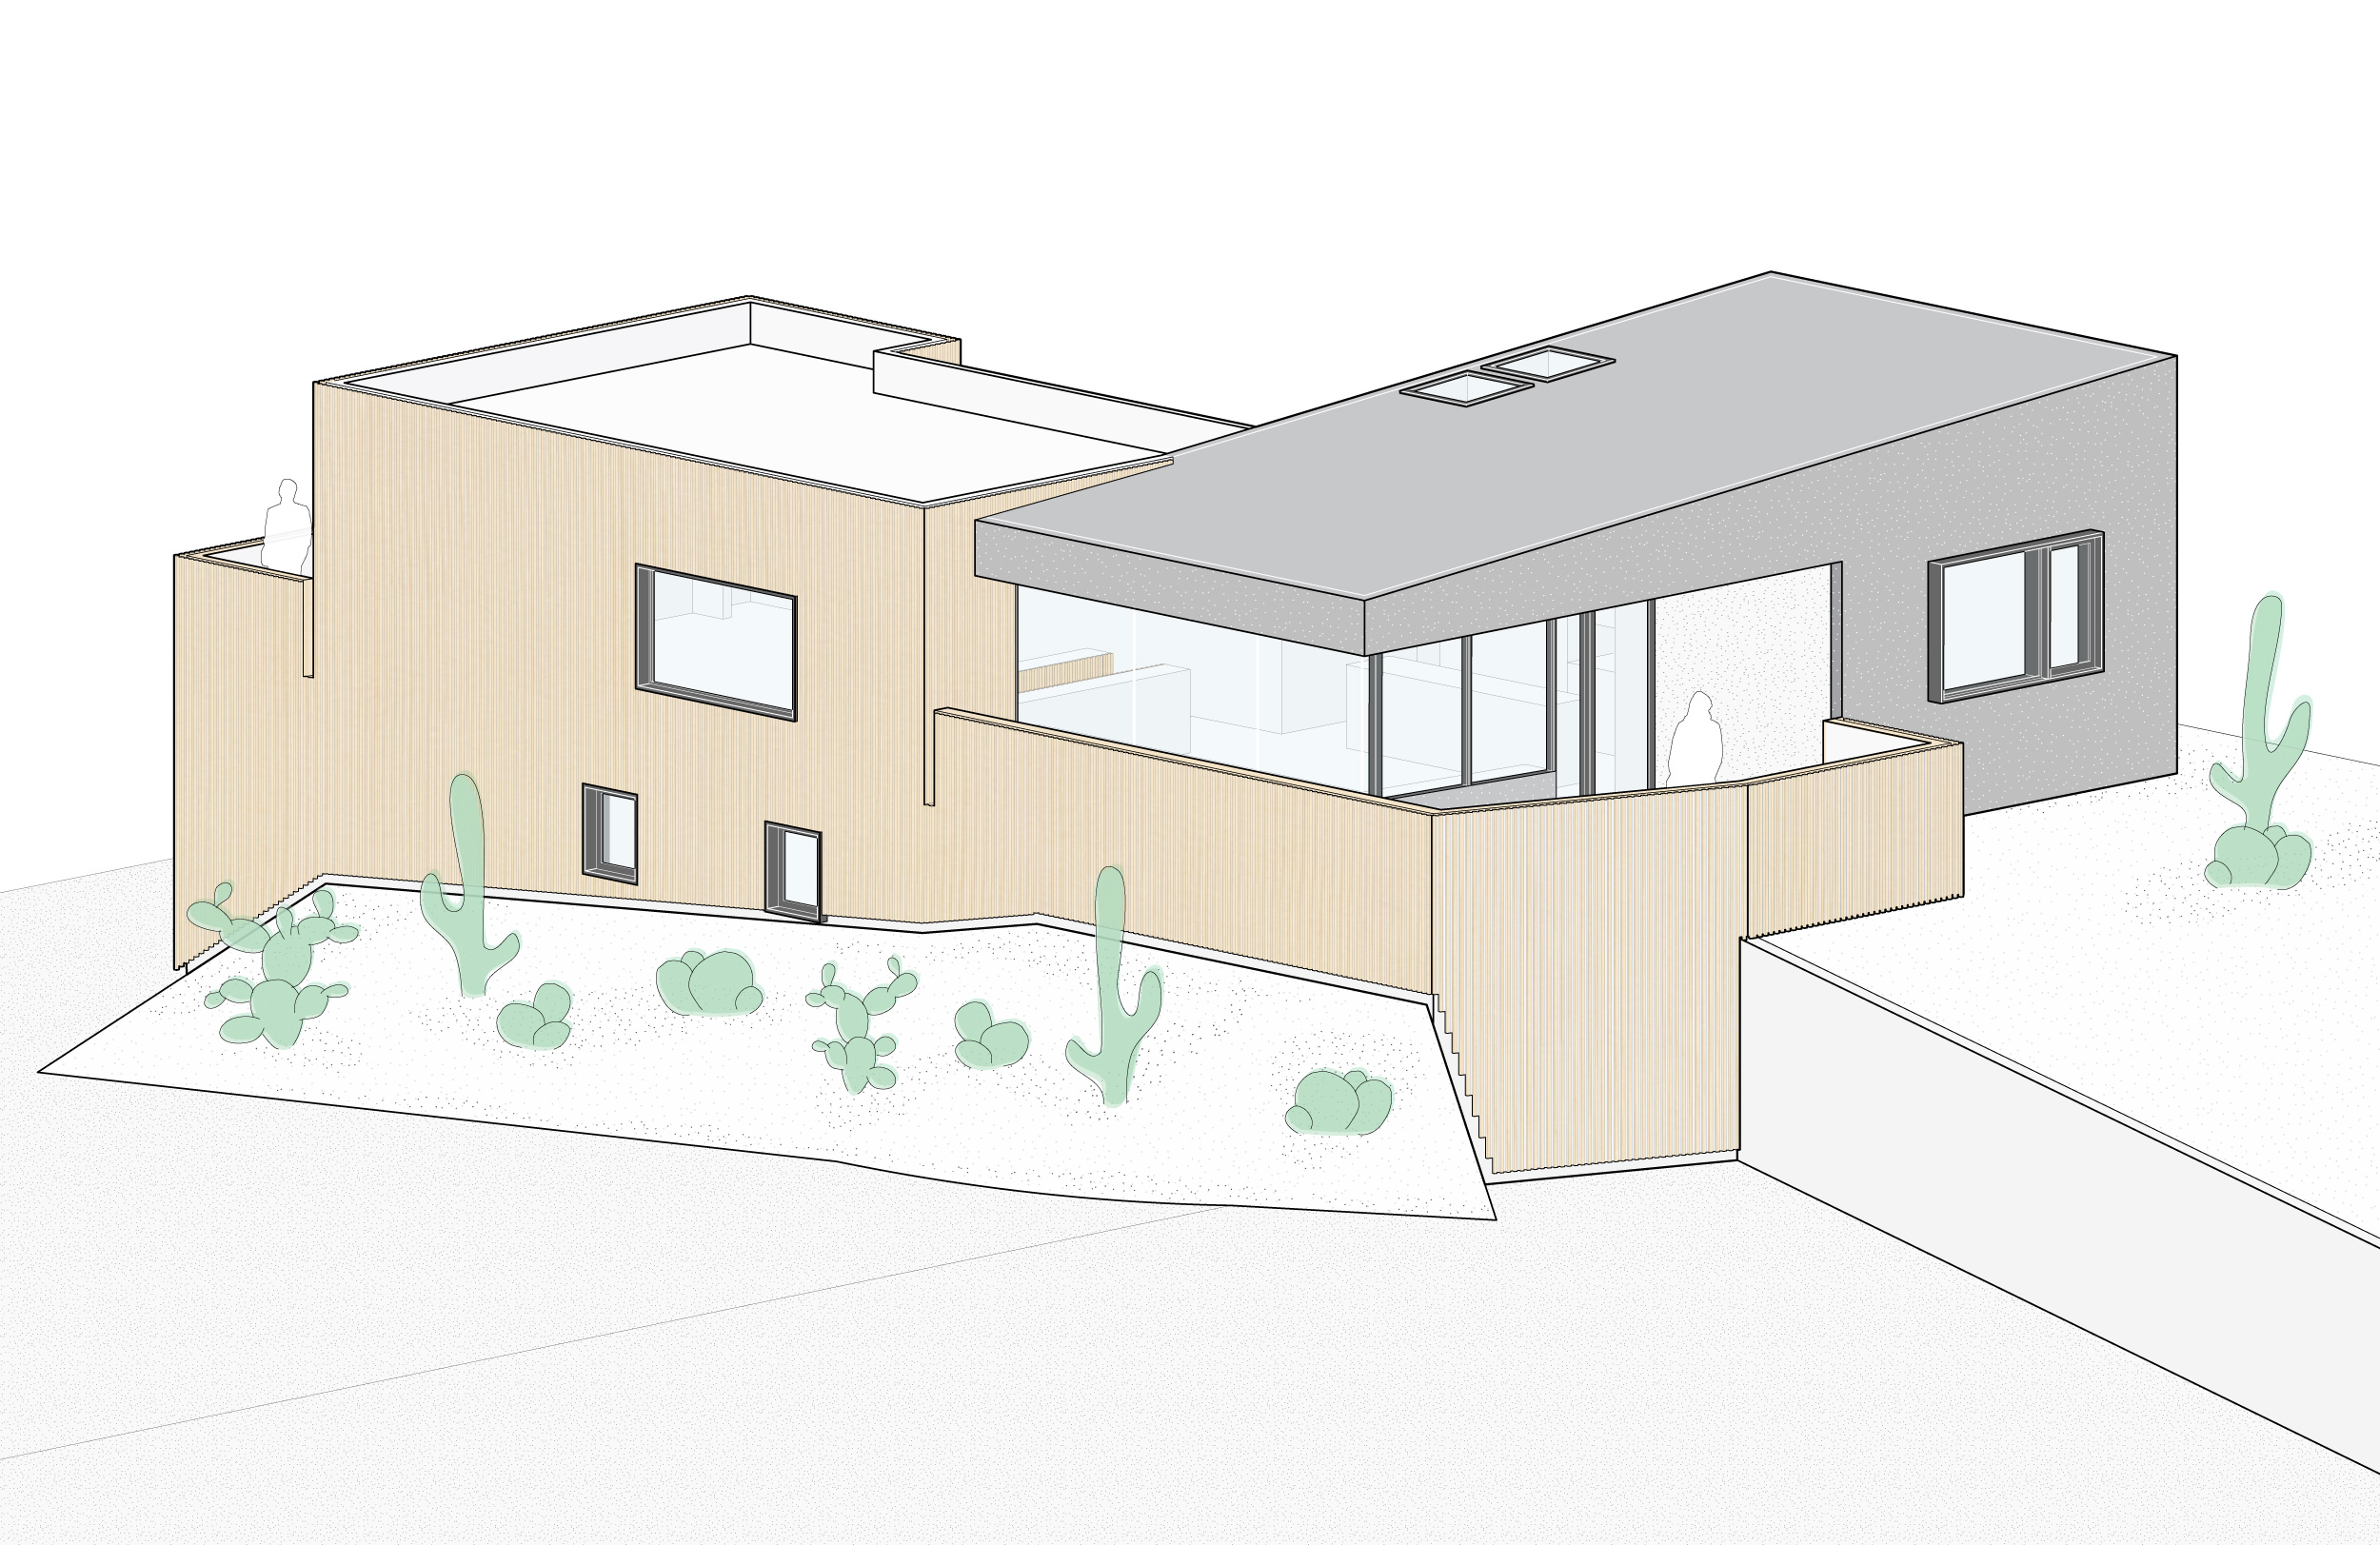 Isometric drawing showing the cedar cladding that wraps the dark stucco addition.